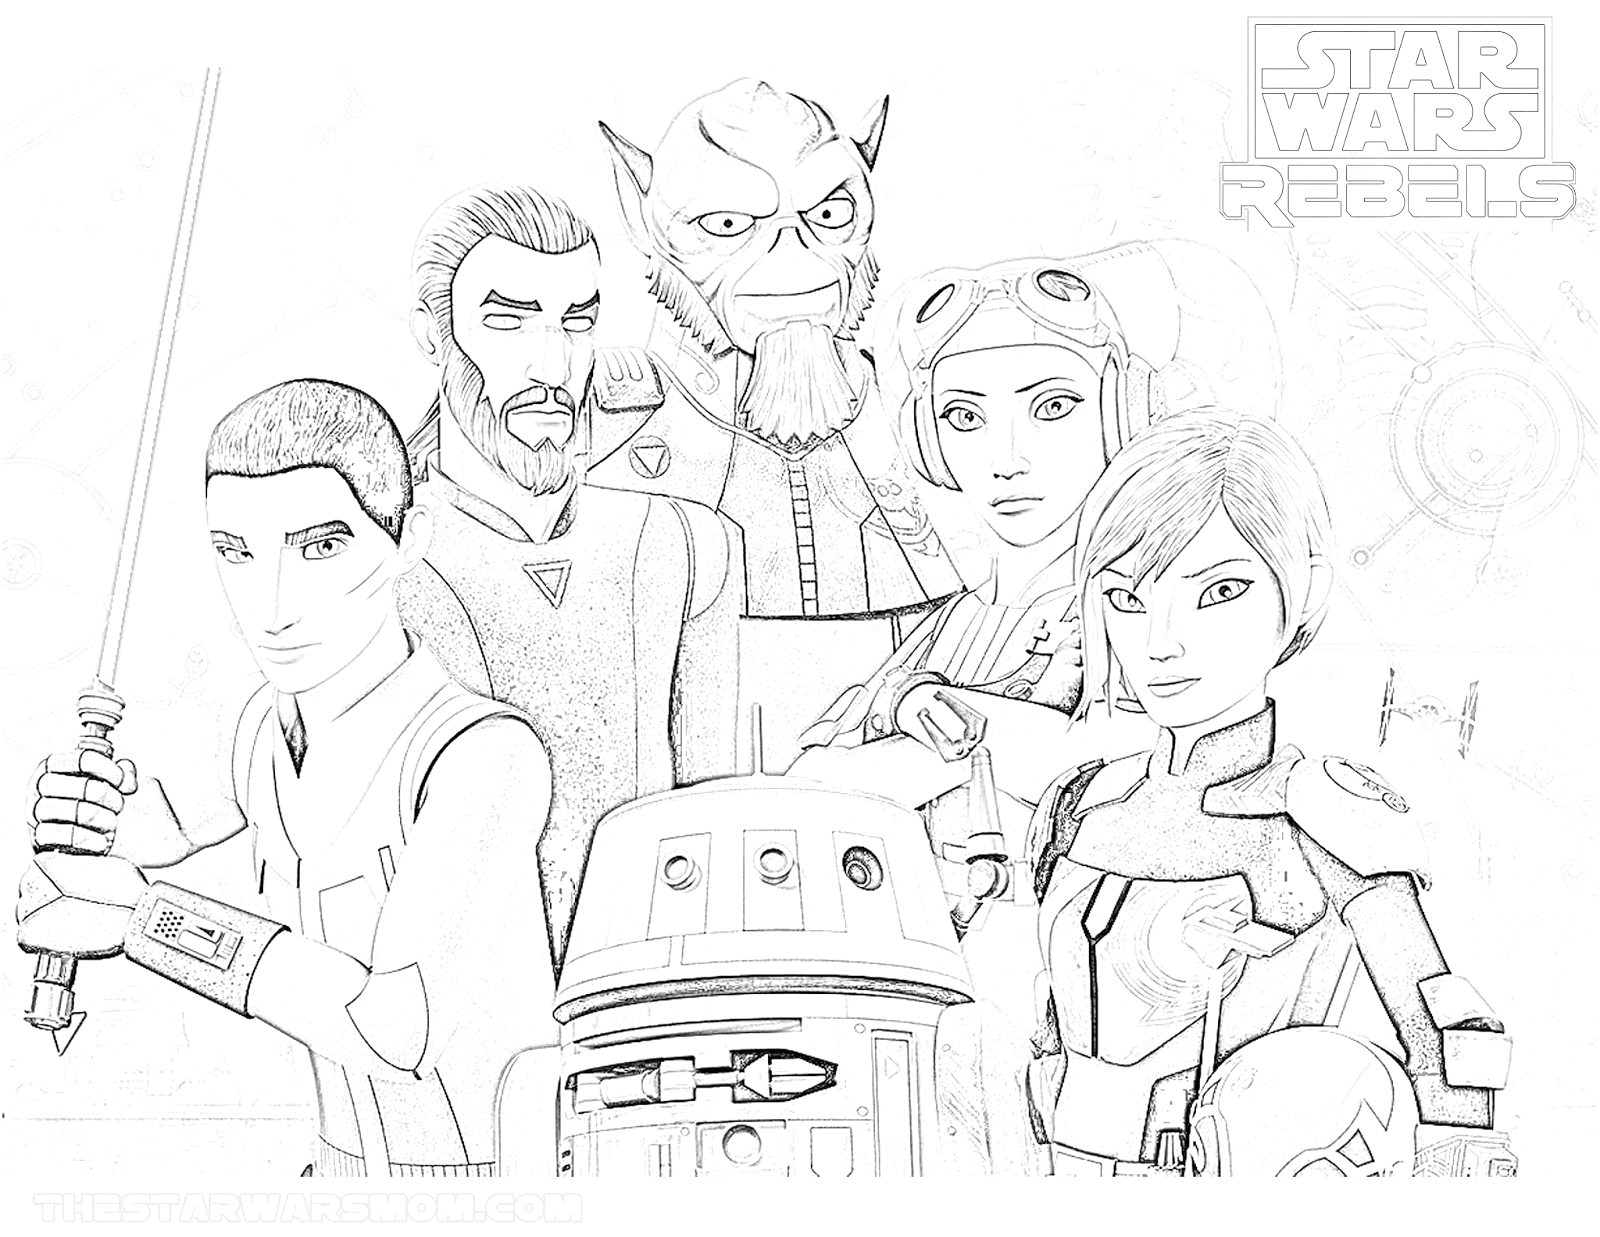 Star Wars Rebels Coloring Pages to Print Star Wars Rebels Season 4 Coloring Page the Star Wars